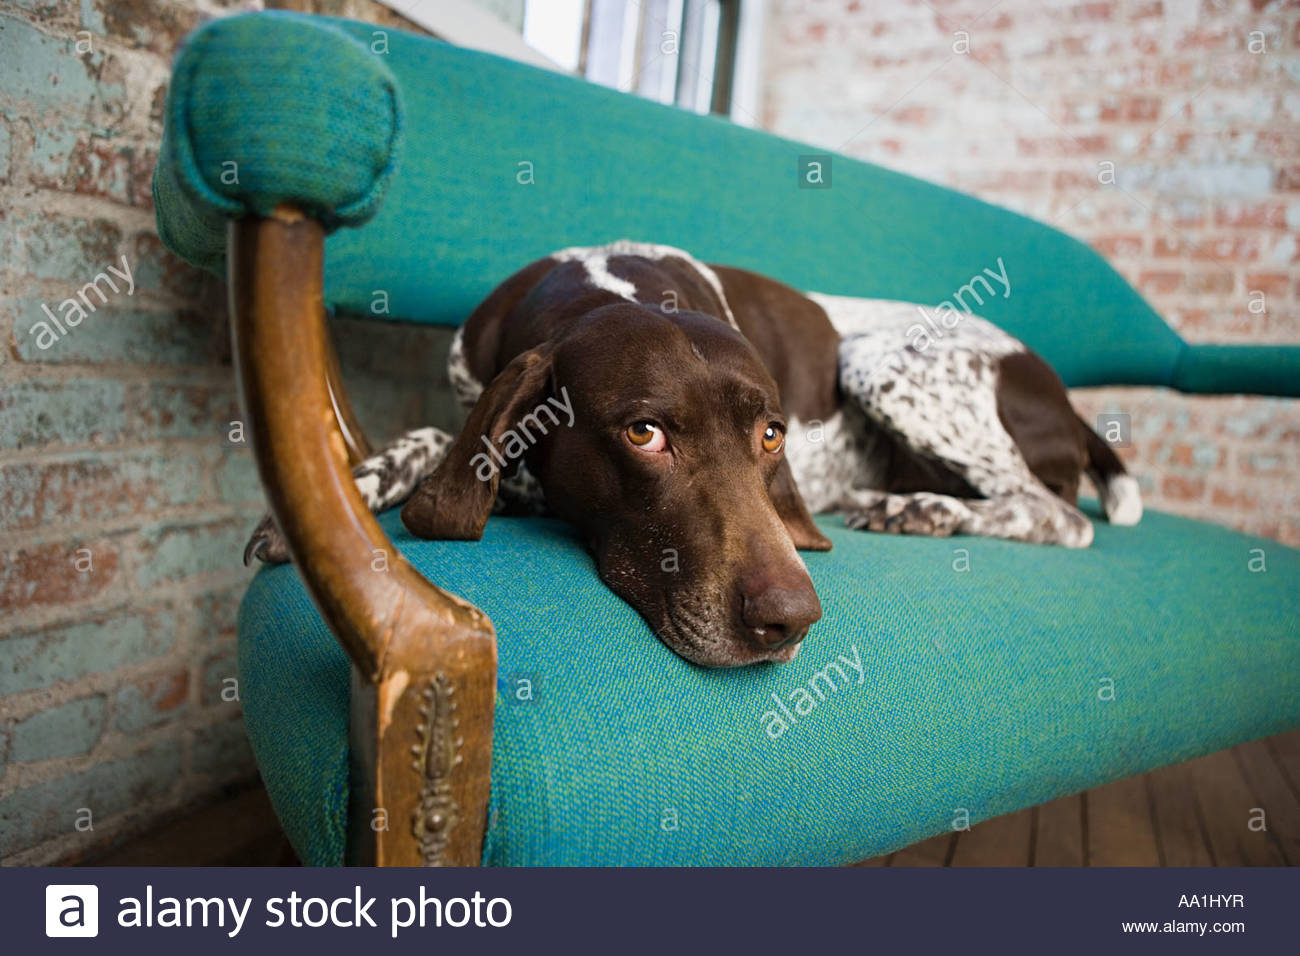 Pointer Dog House Stock Photos & Pointer Dog House Stock Images - Alamy